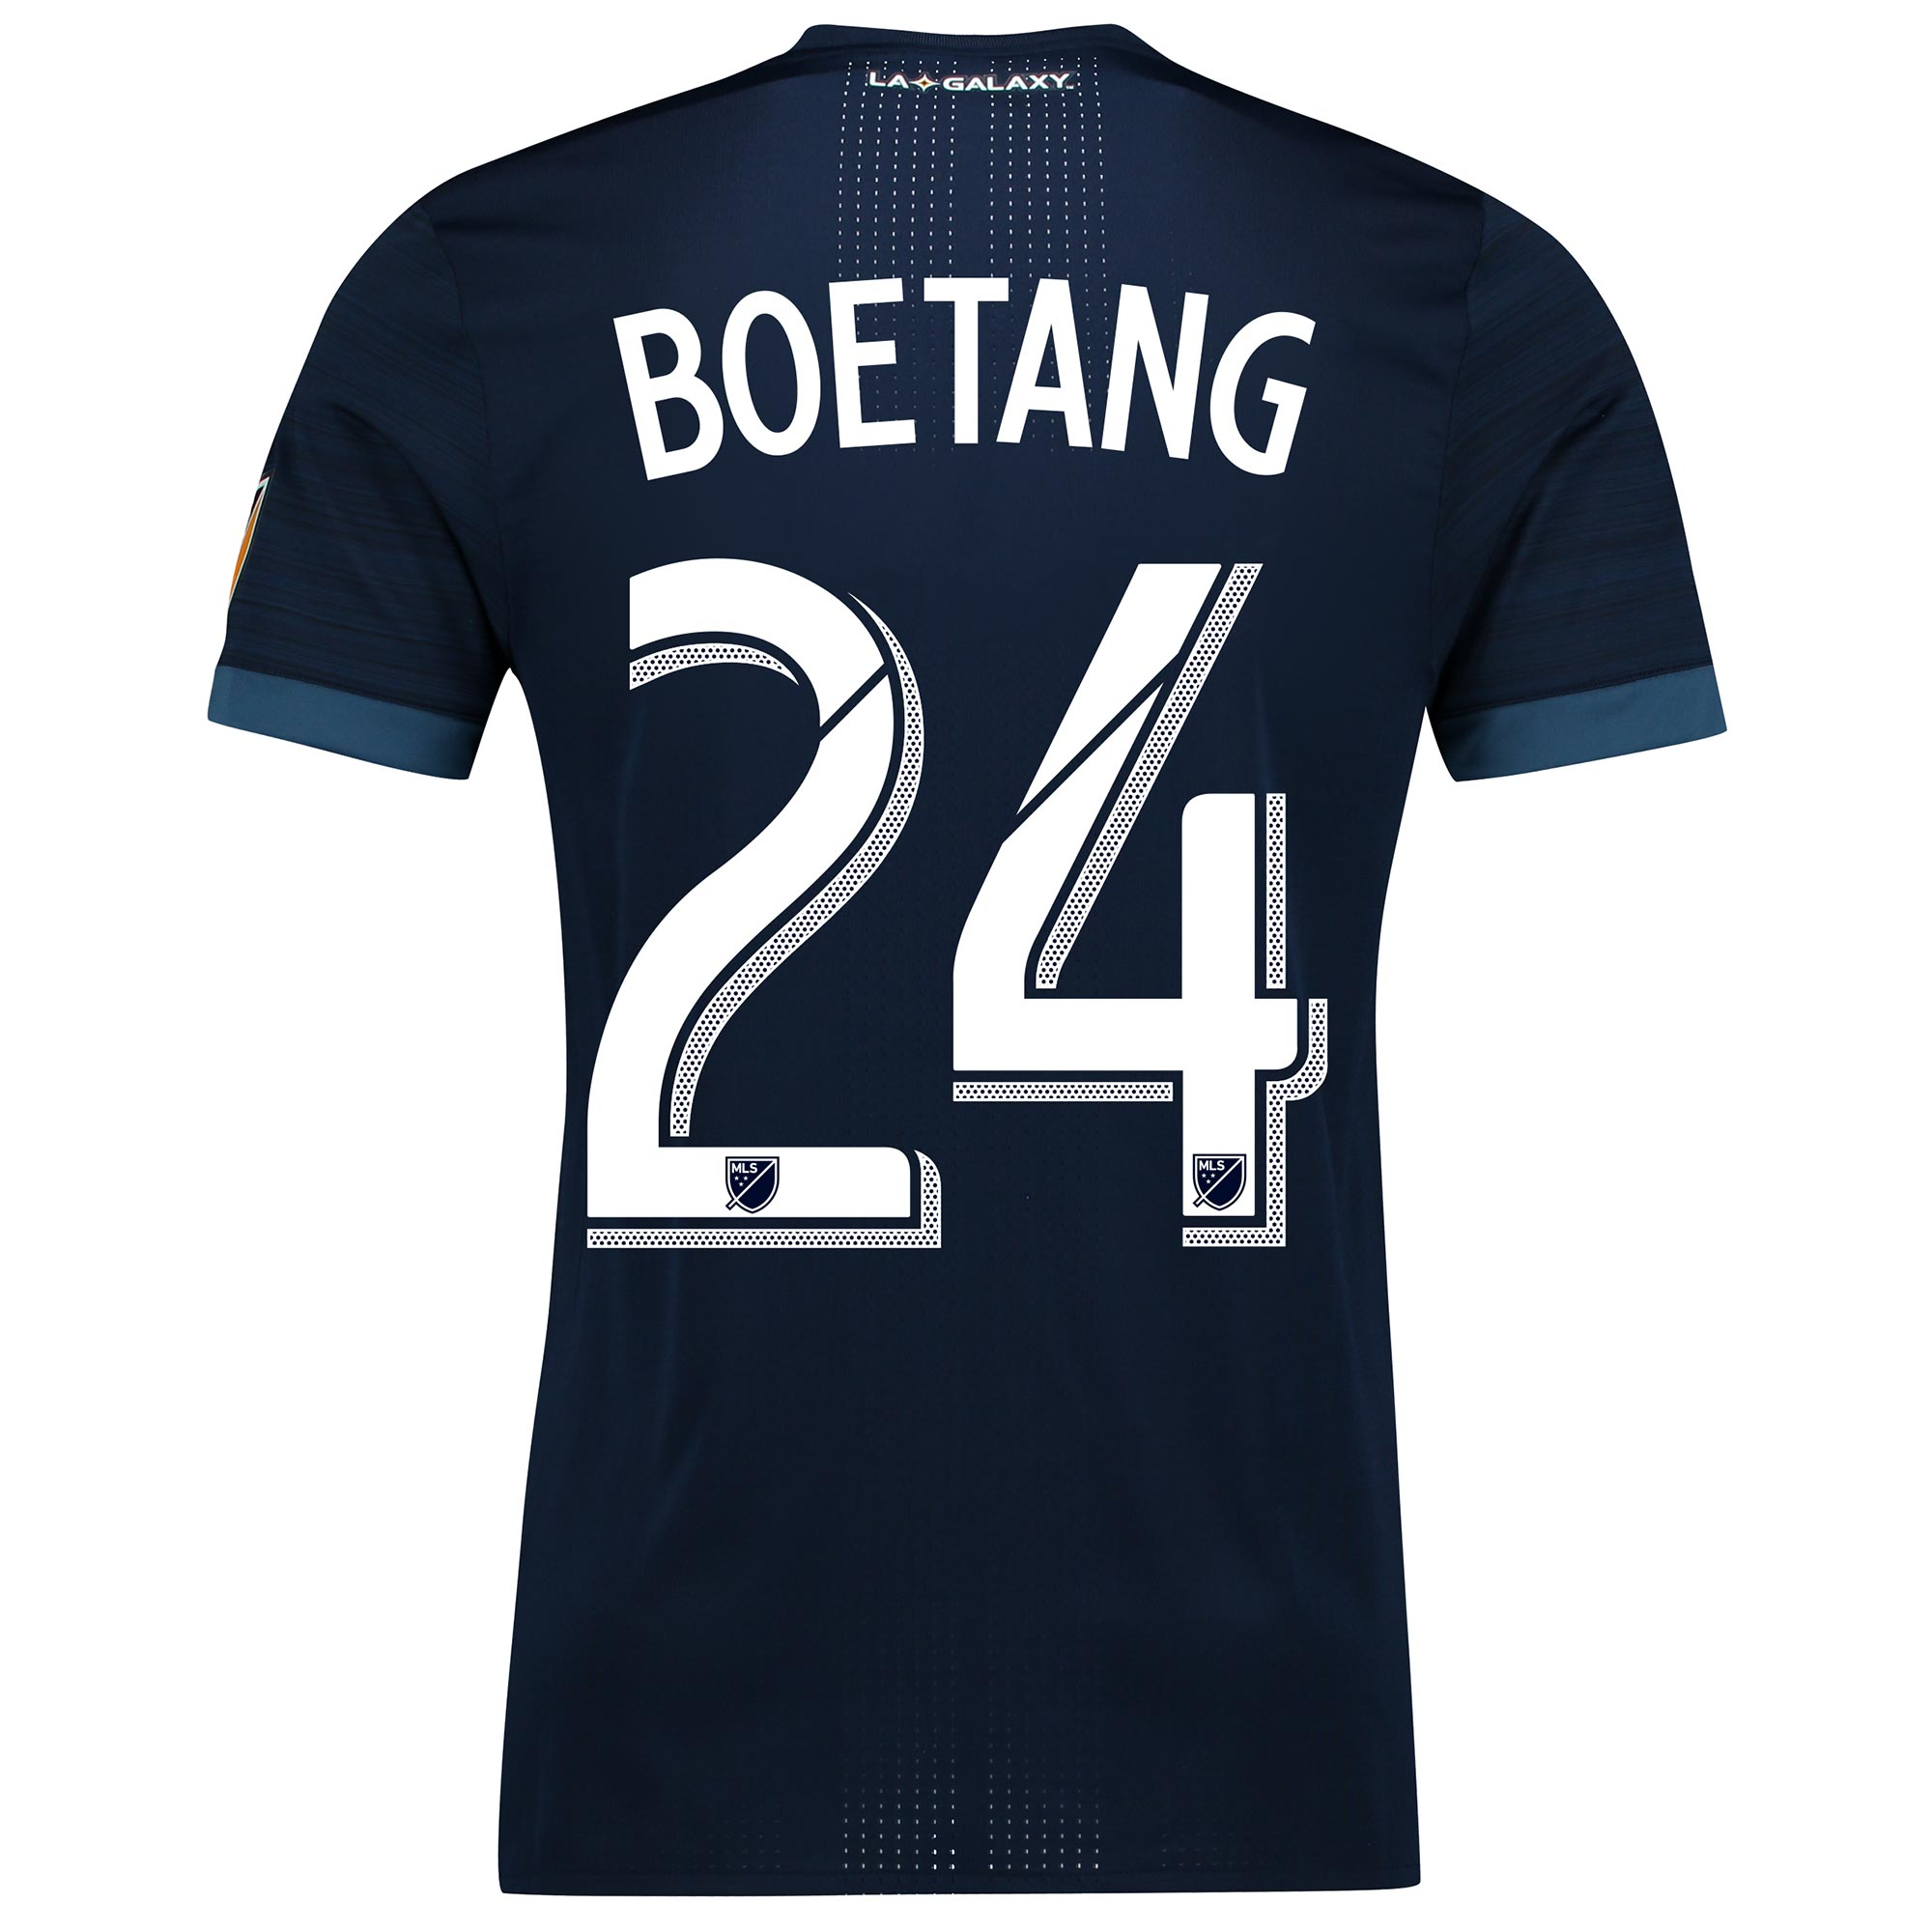 LA Galaxy Authentic Away Shirt 2017-18 with Boetang 24 printing, N/A